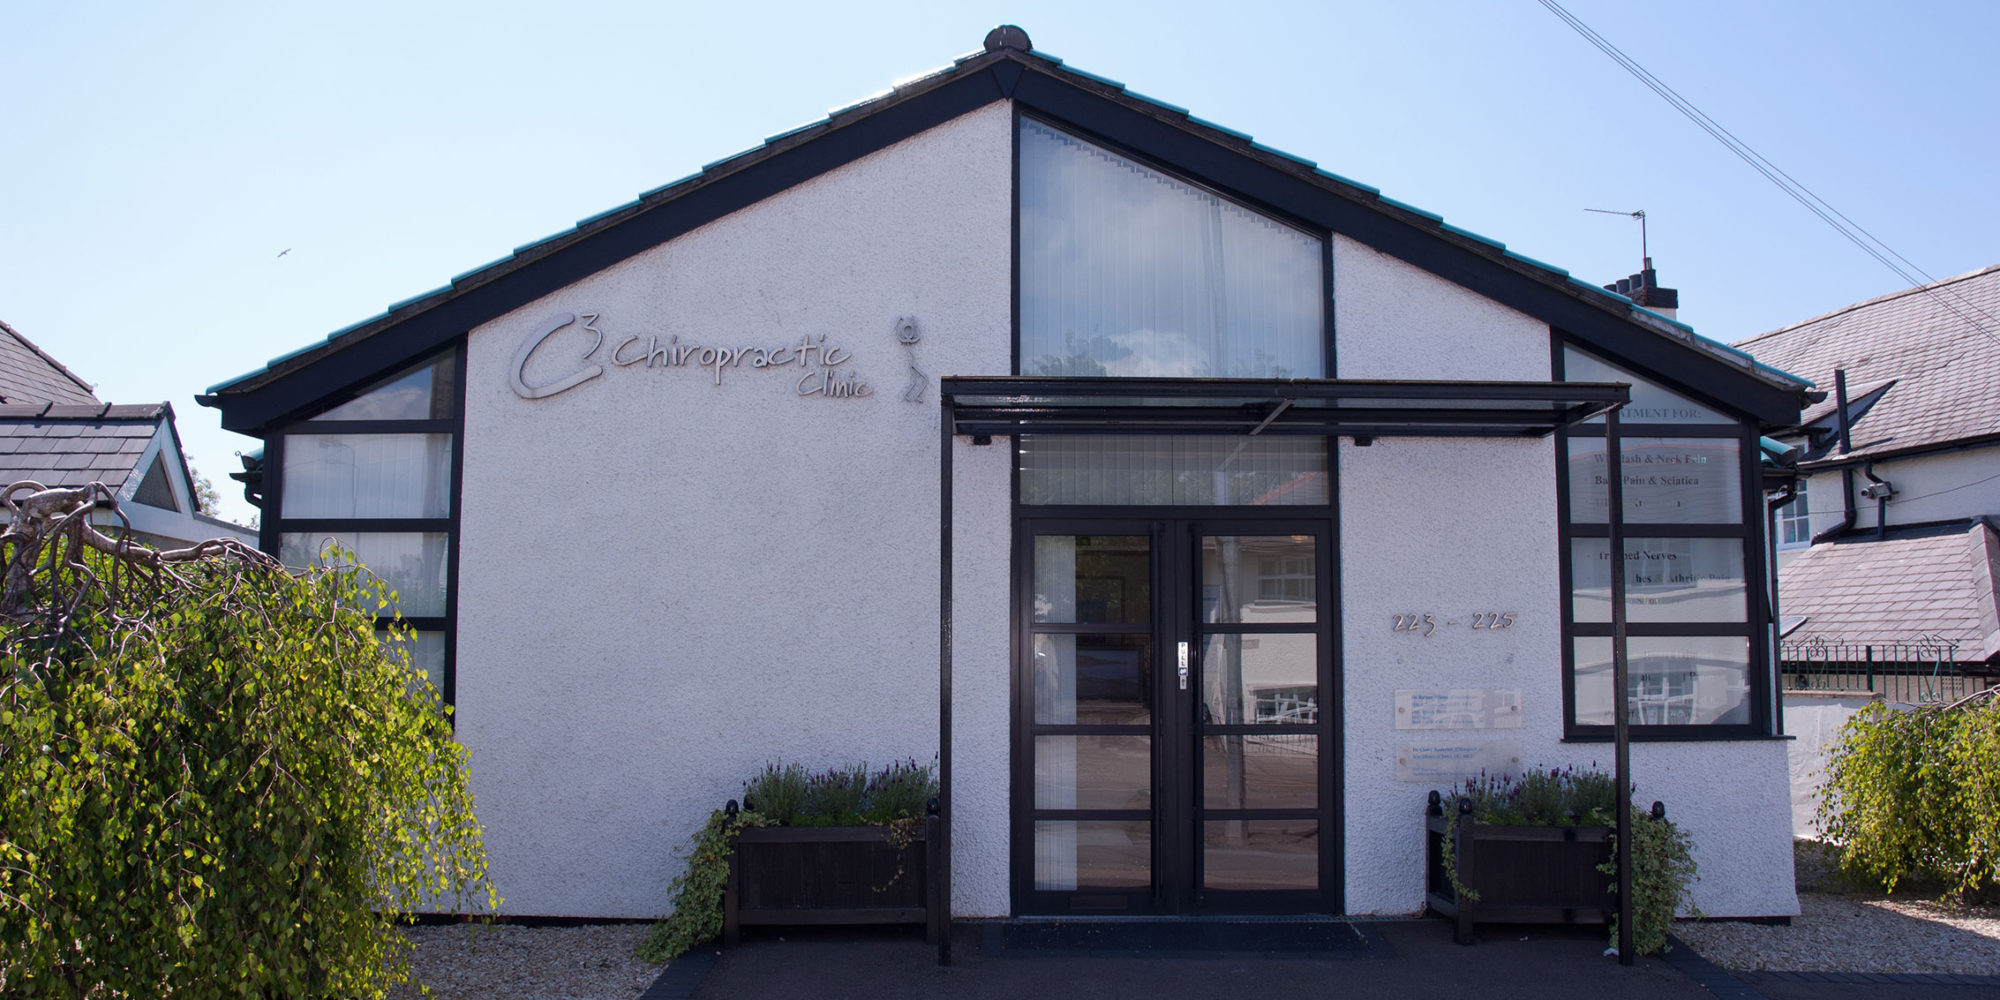 C3 Chiropractic Clinic in Cardiff